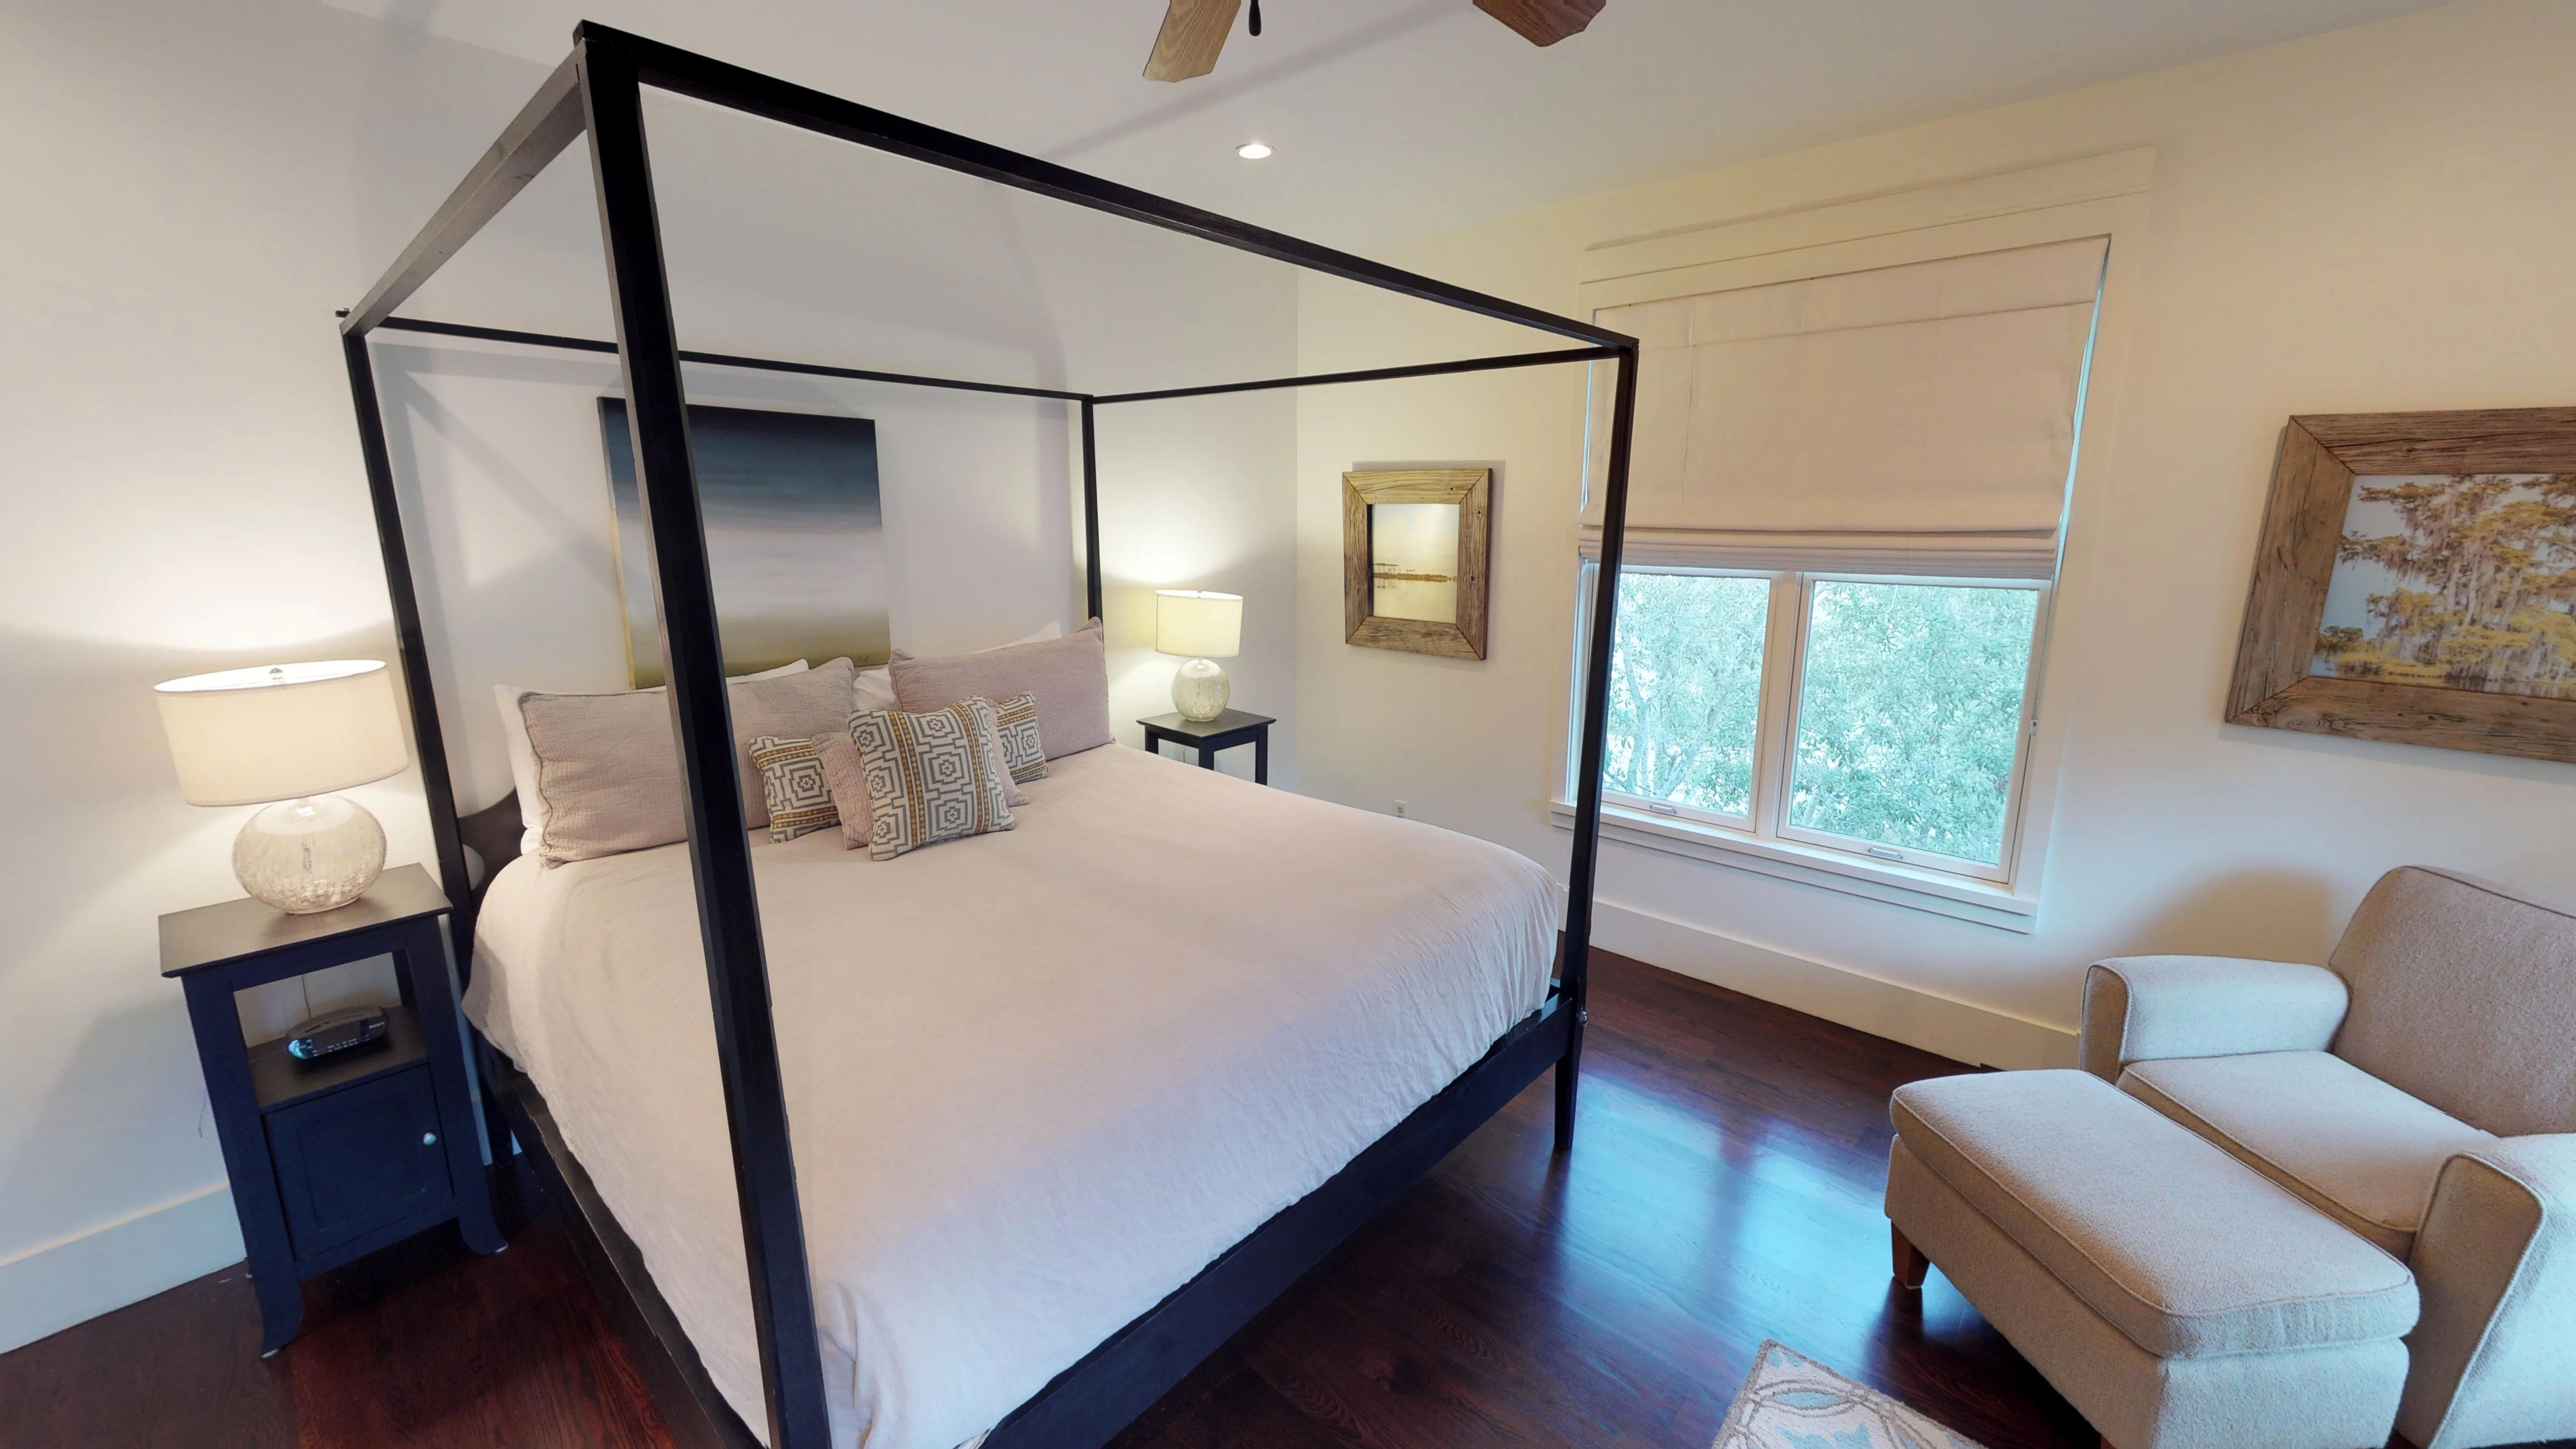 Four poster king bed in the master